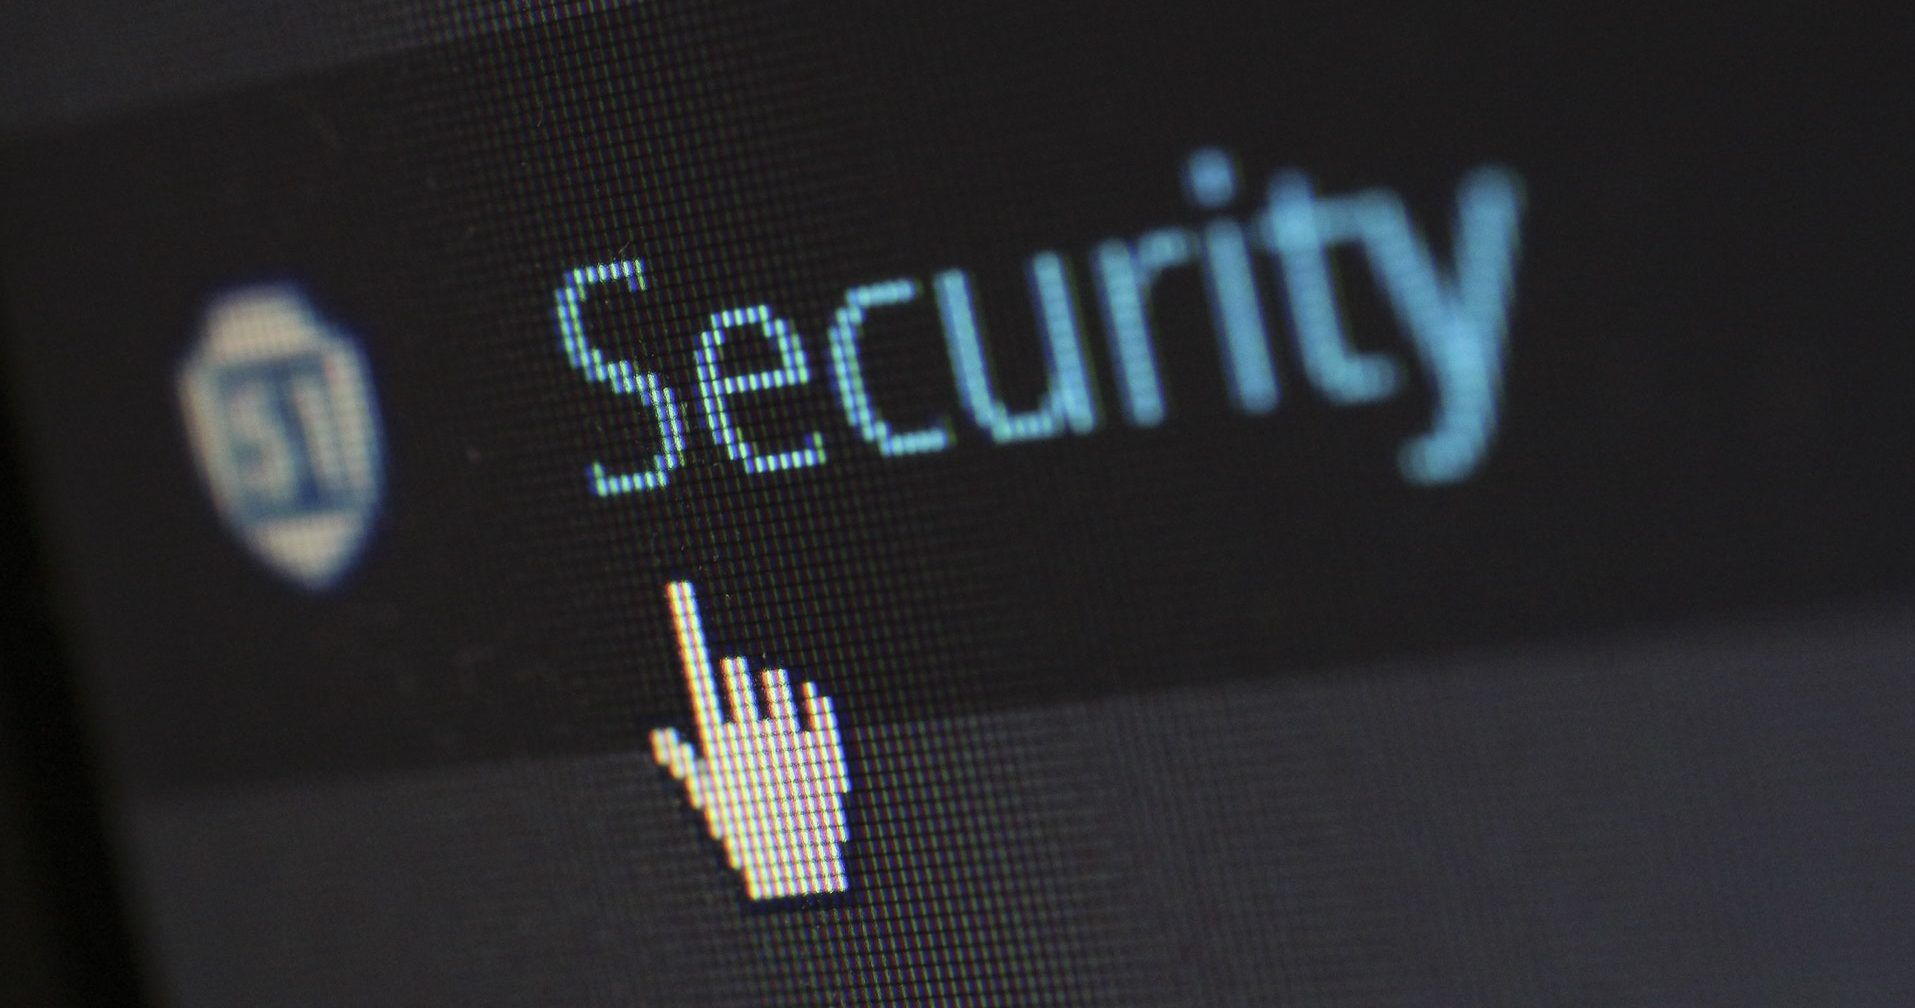 These are the best tips for tech security